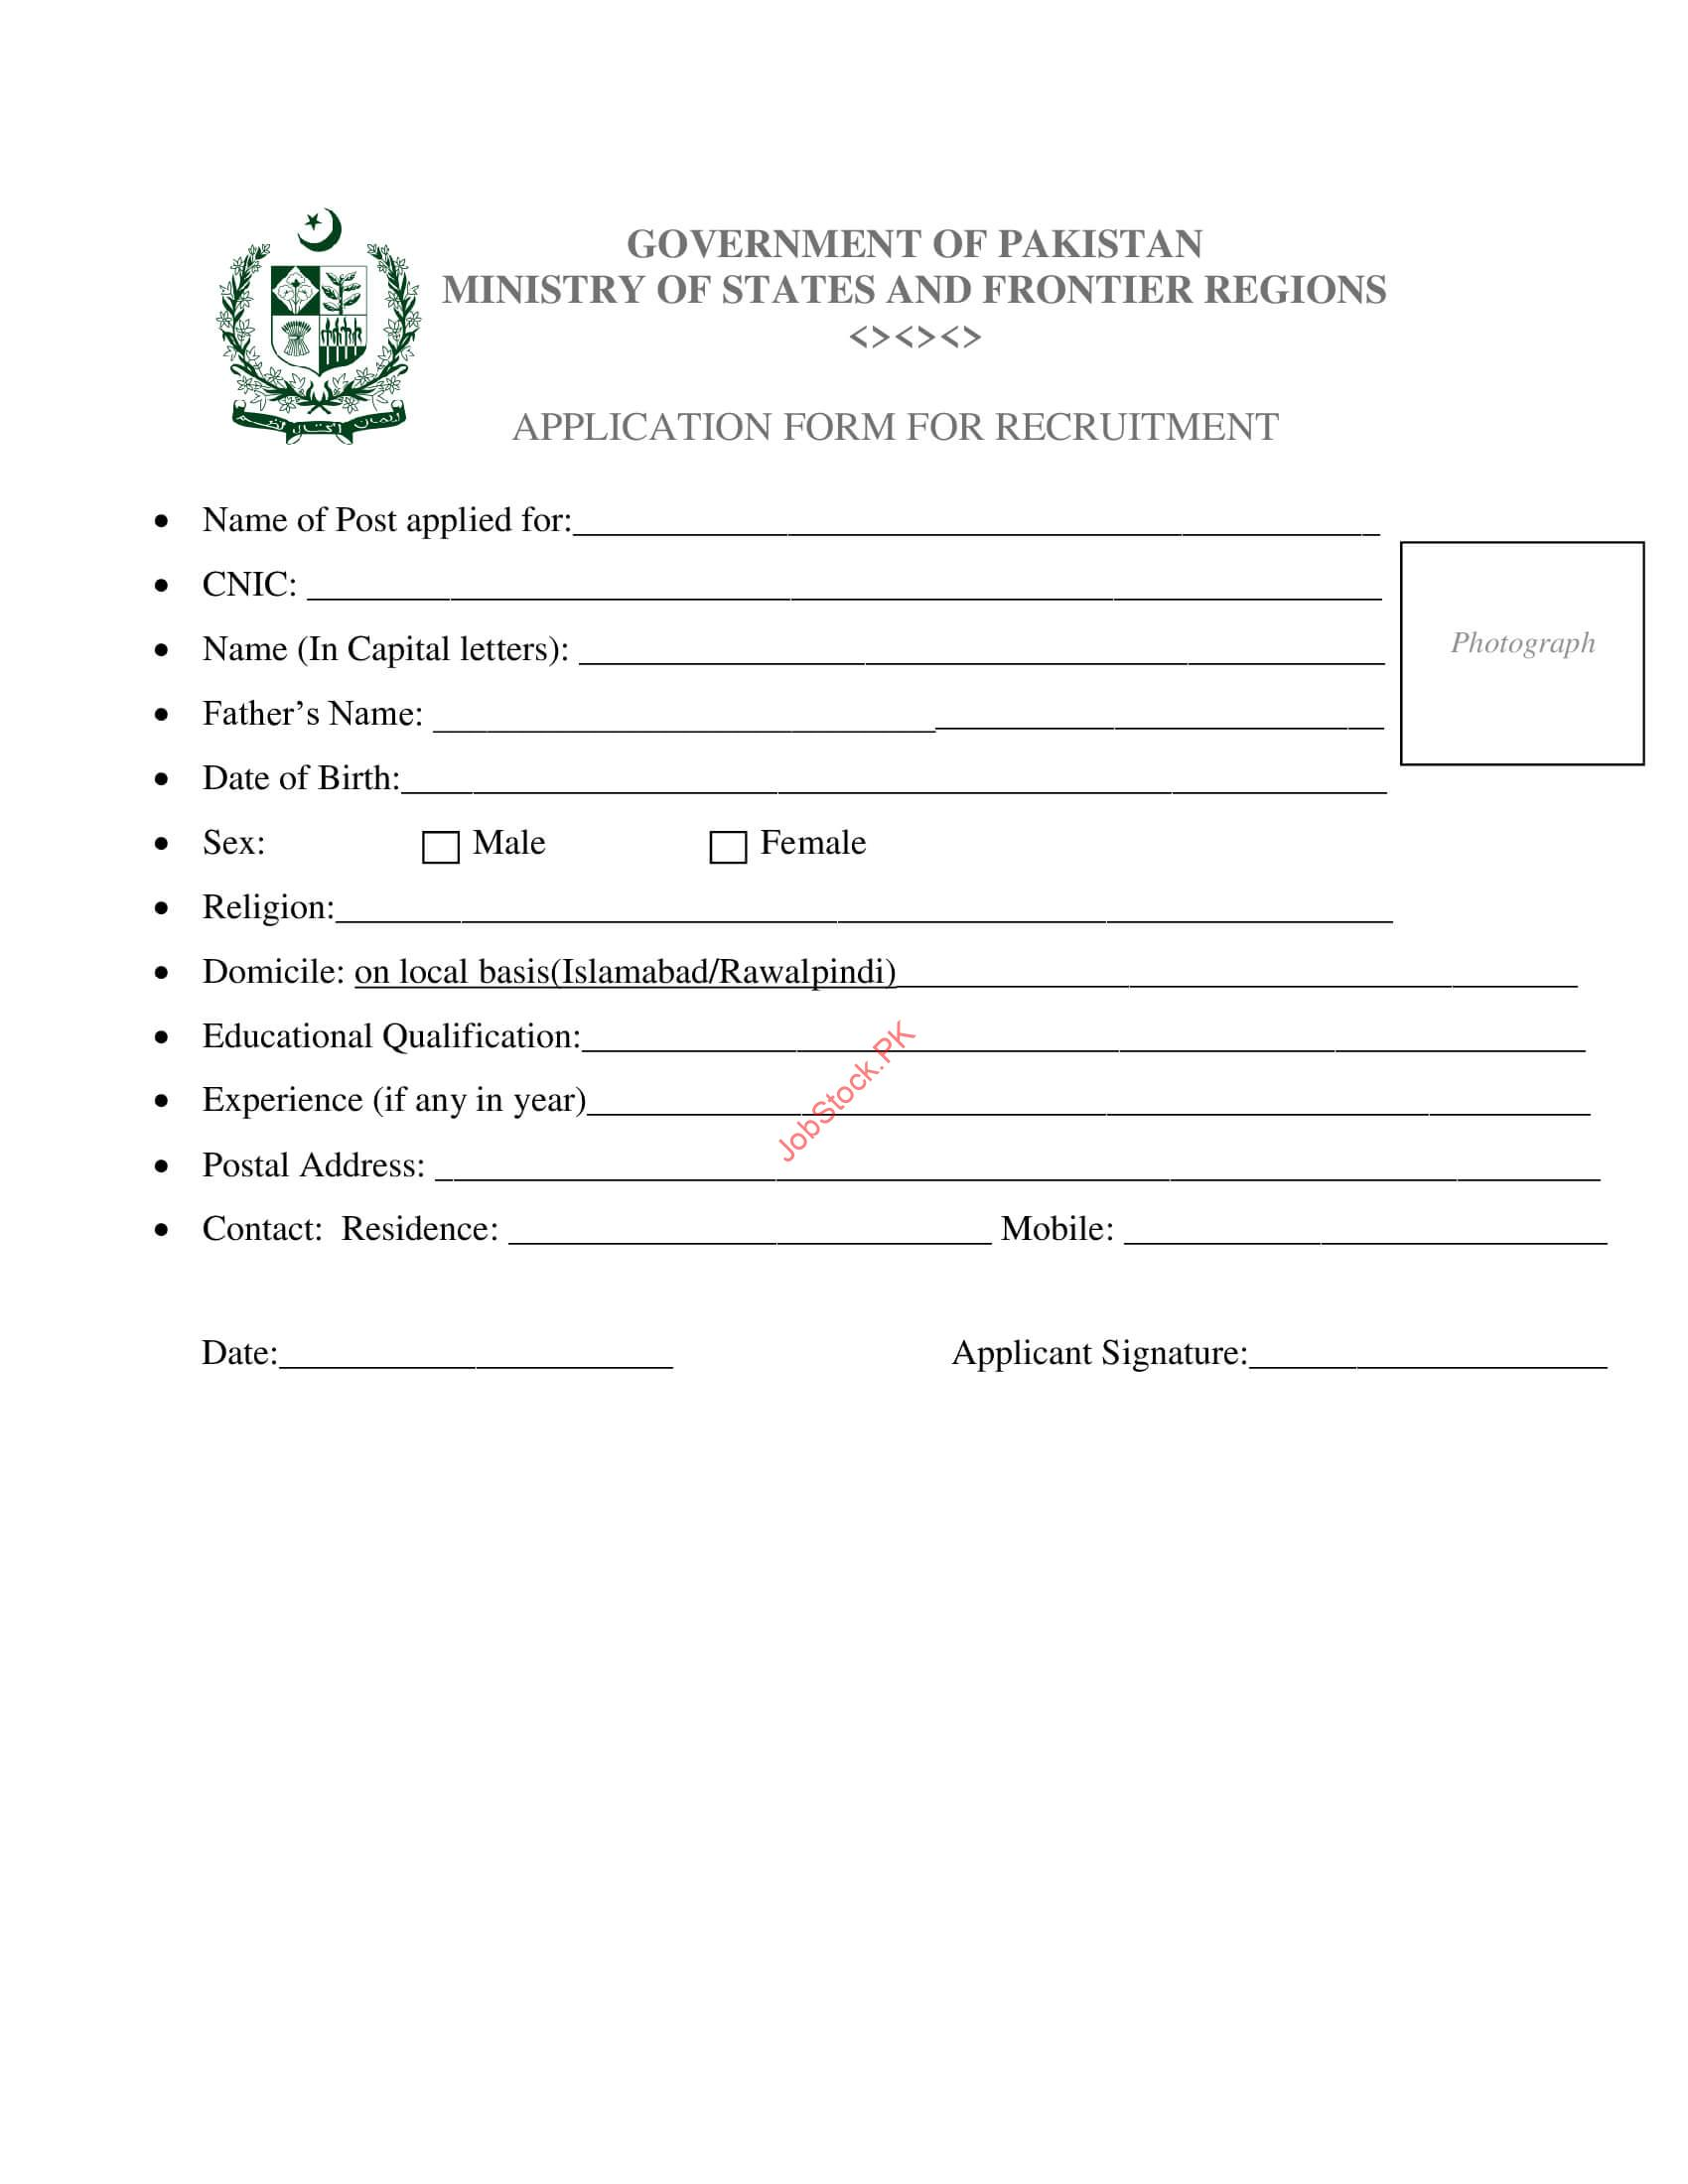 Application Form Of Naib Qasid Jobs In Islamabad 2021 Ministry Of States And Frontier Regions Jobs 2021